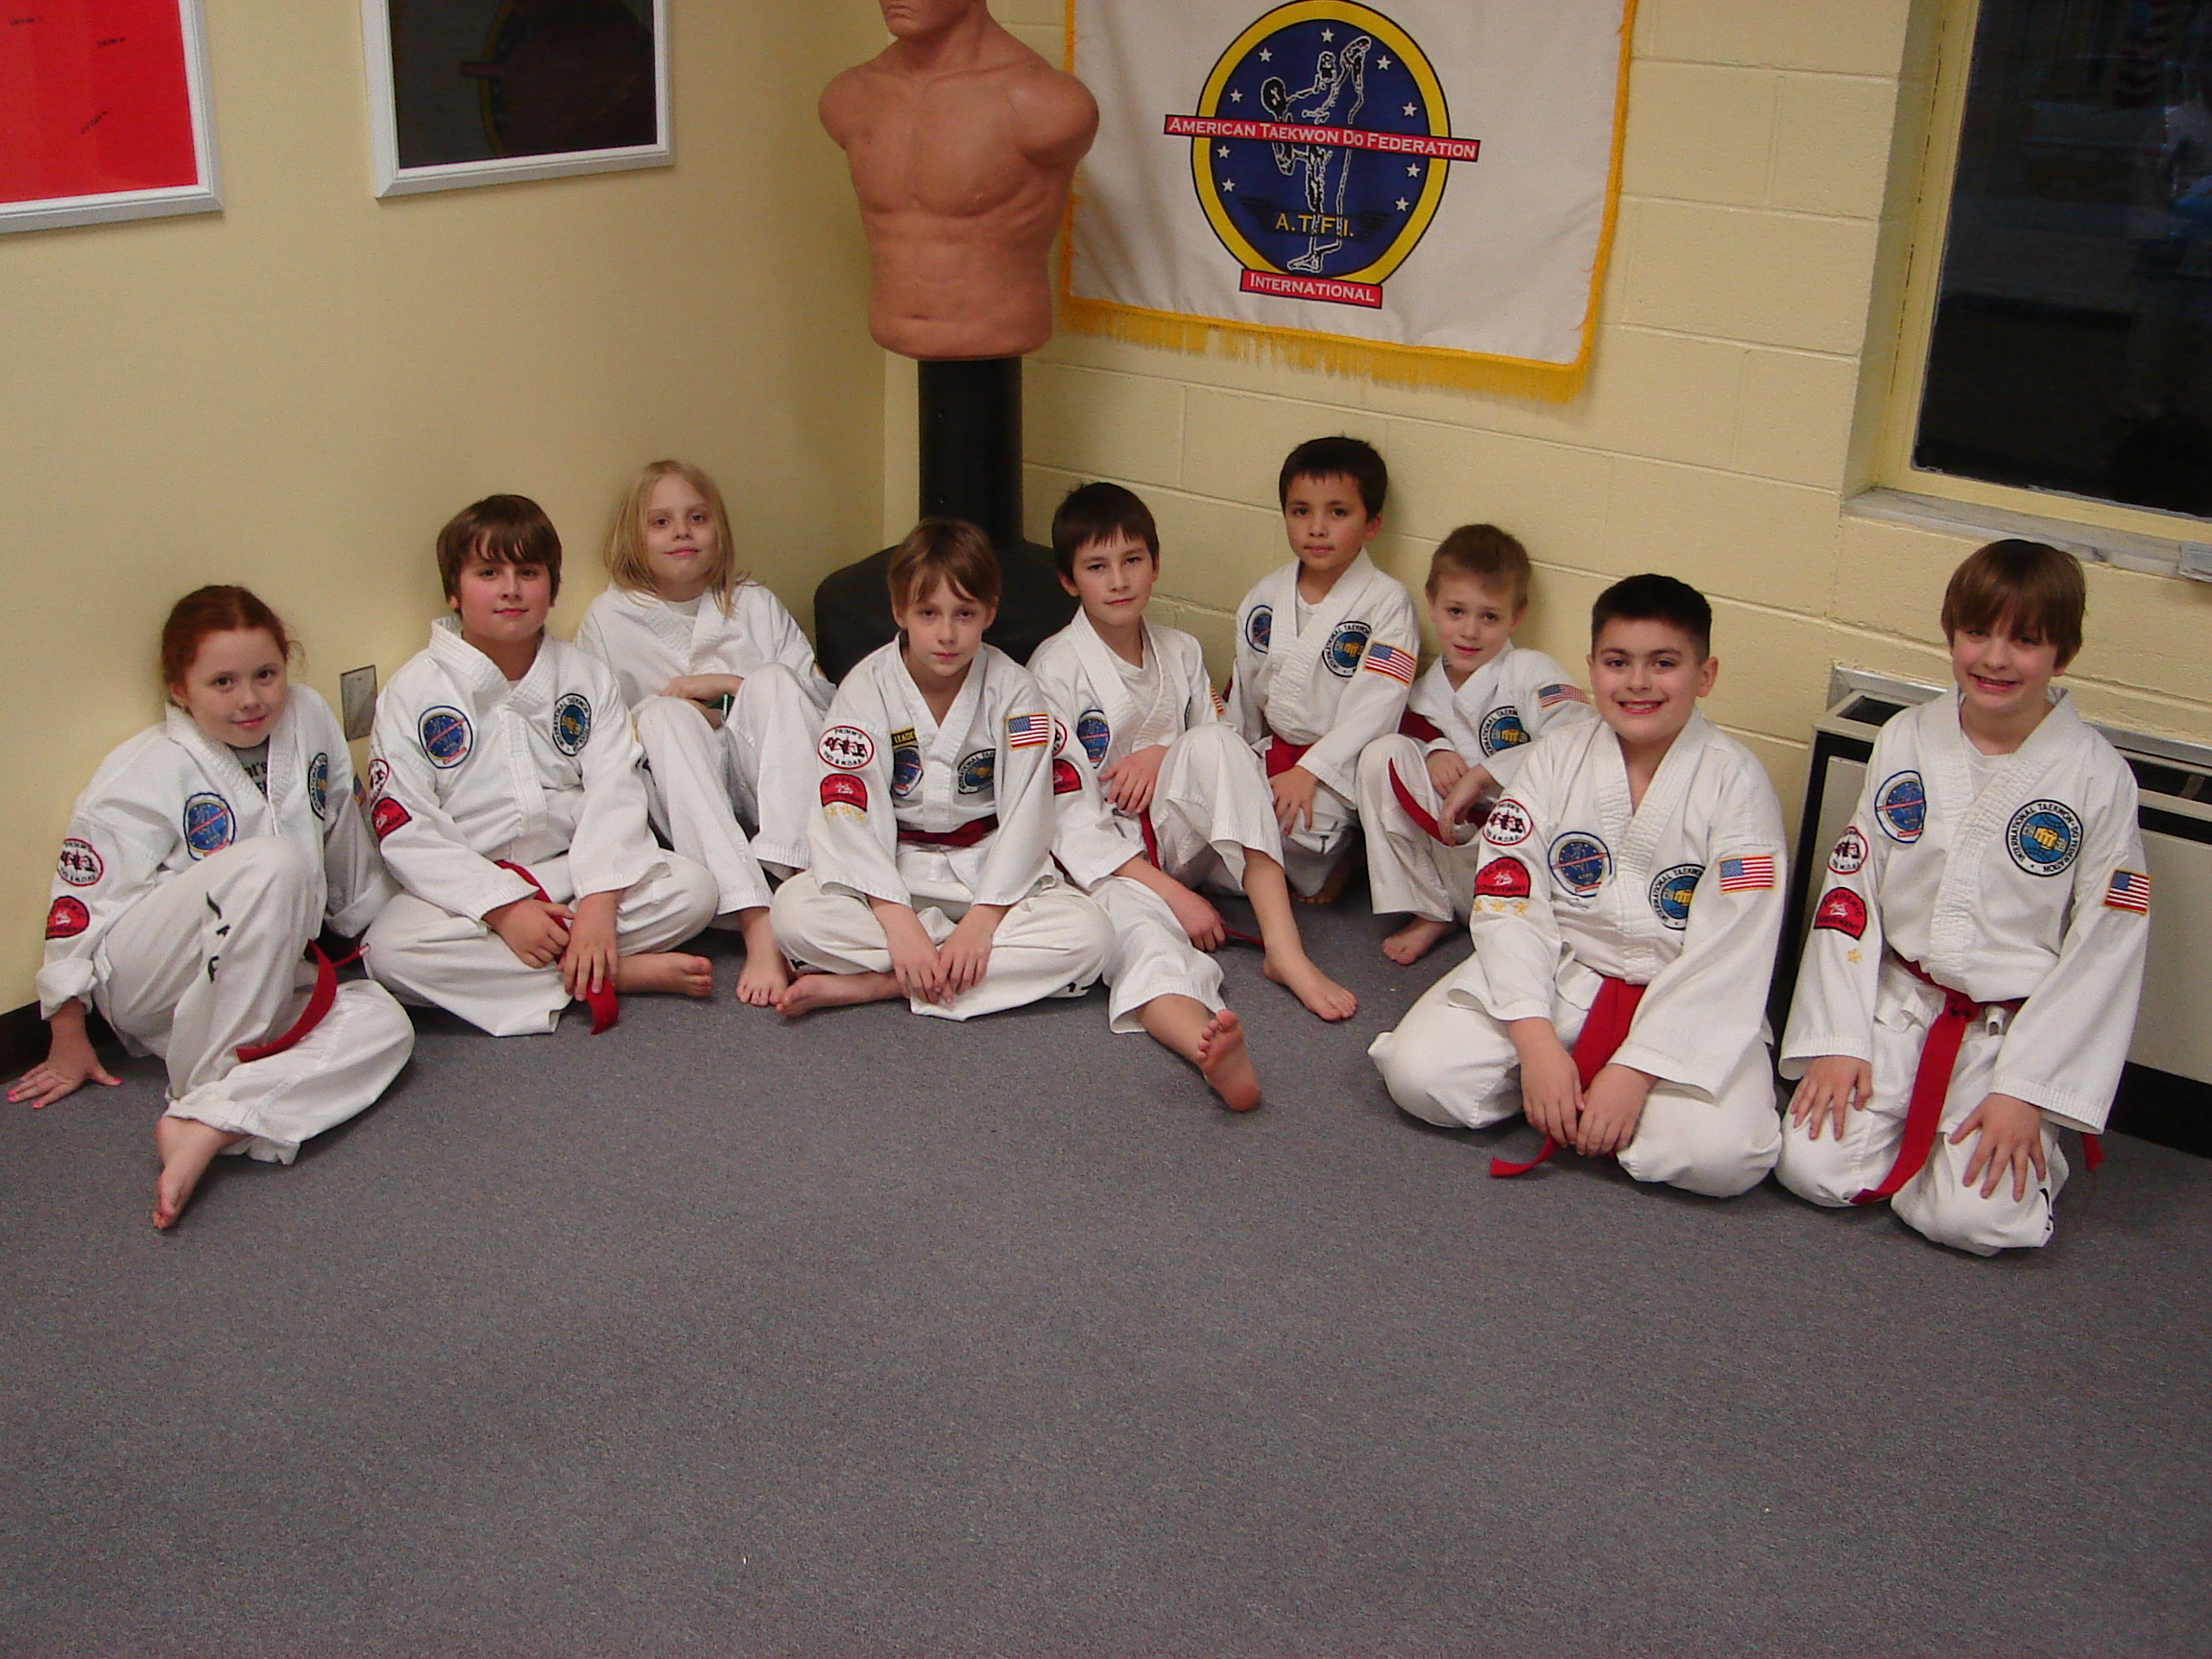 Red belts are camera shy,not